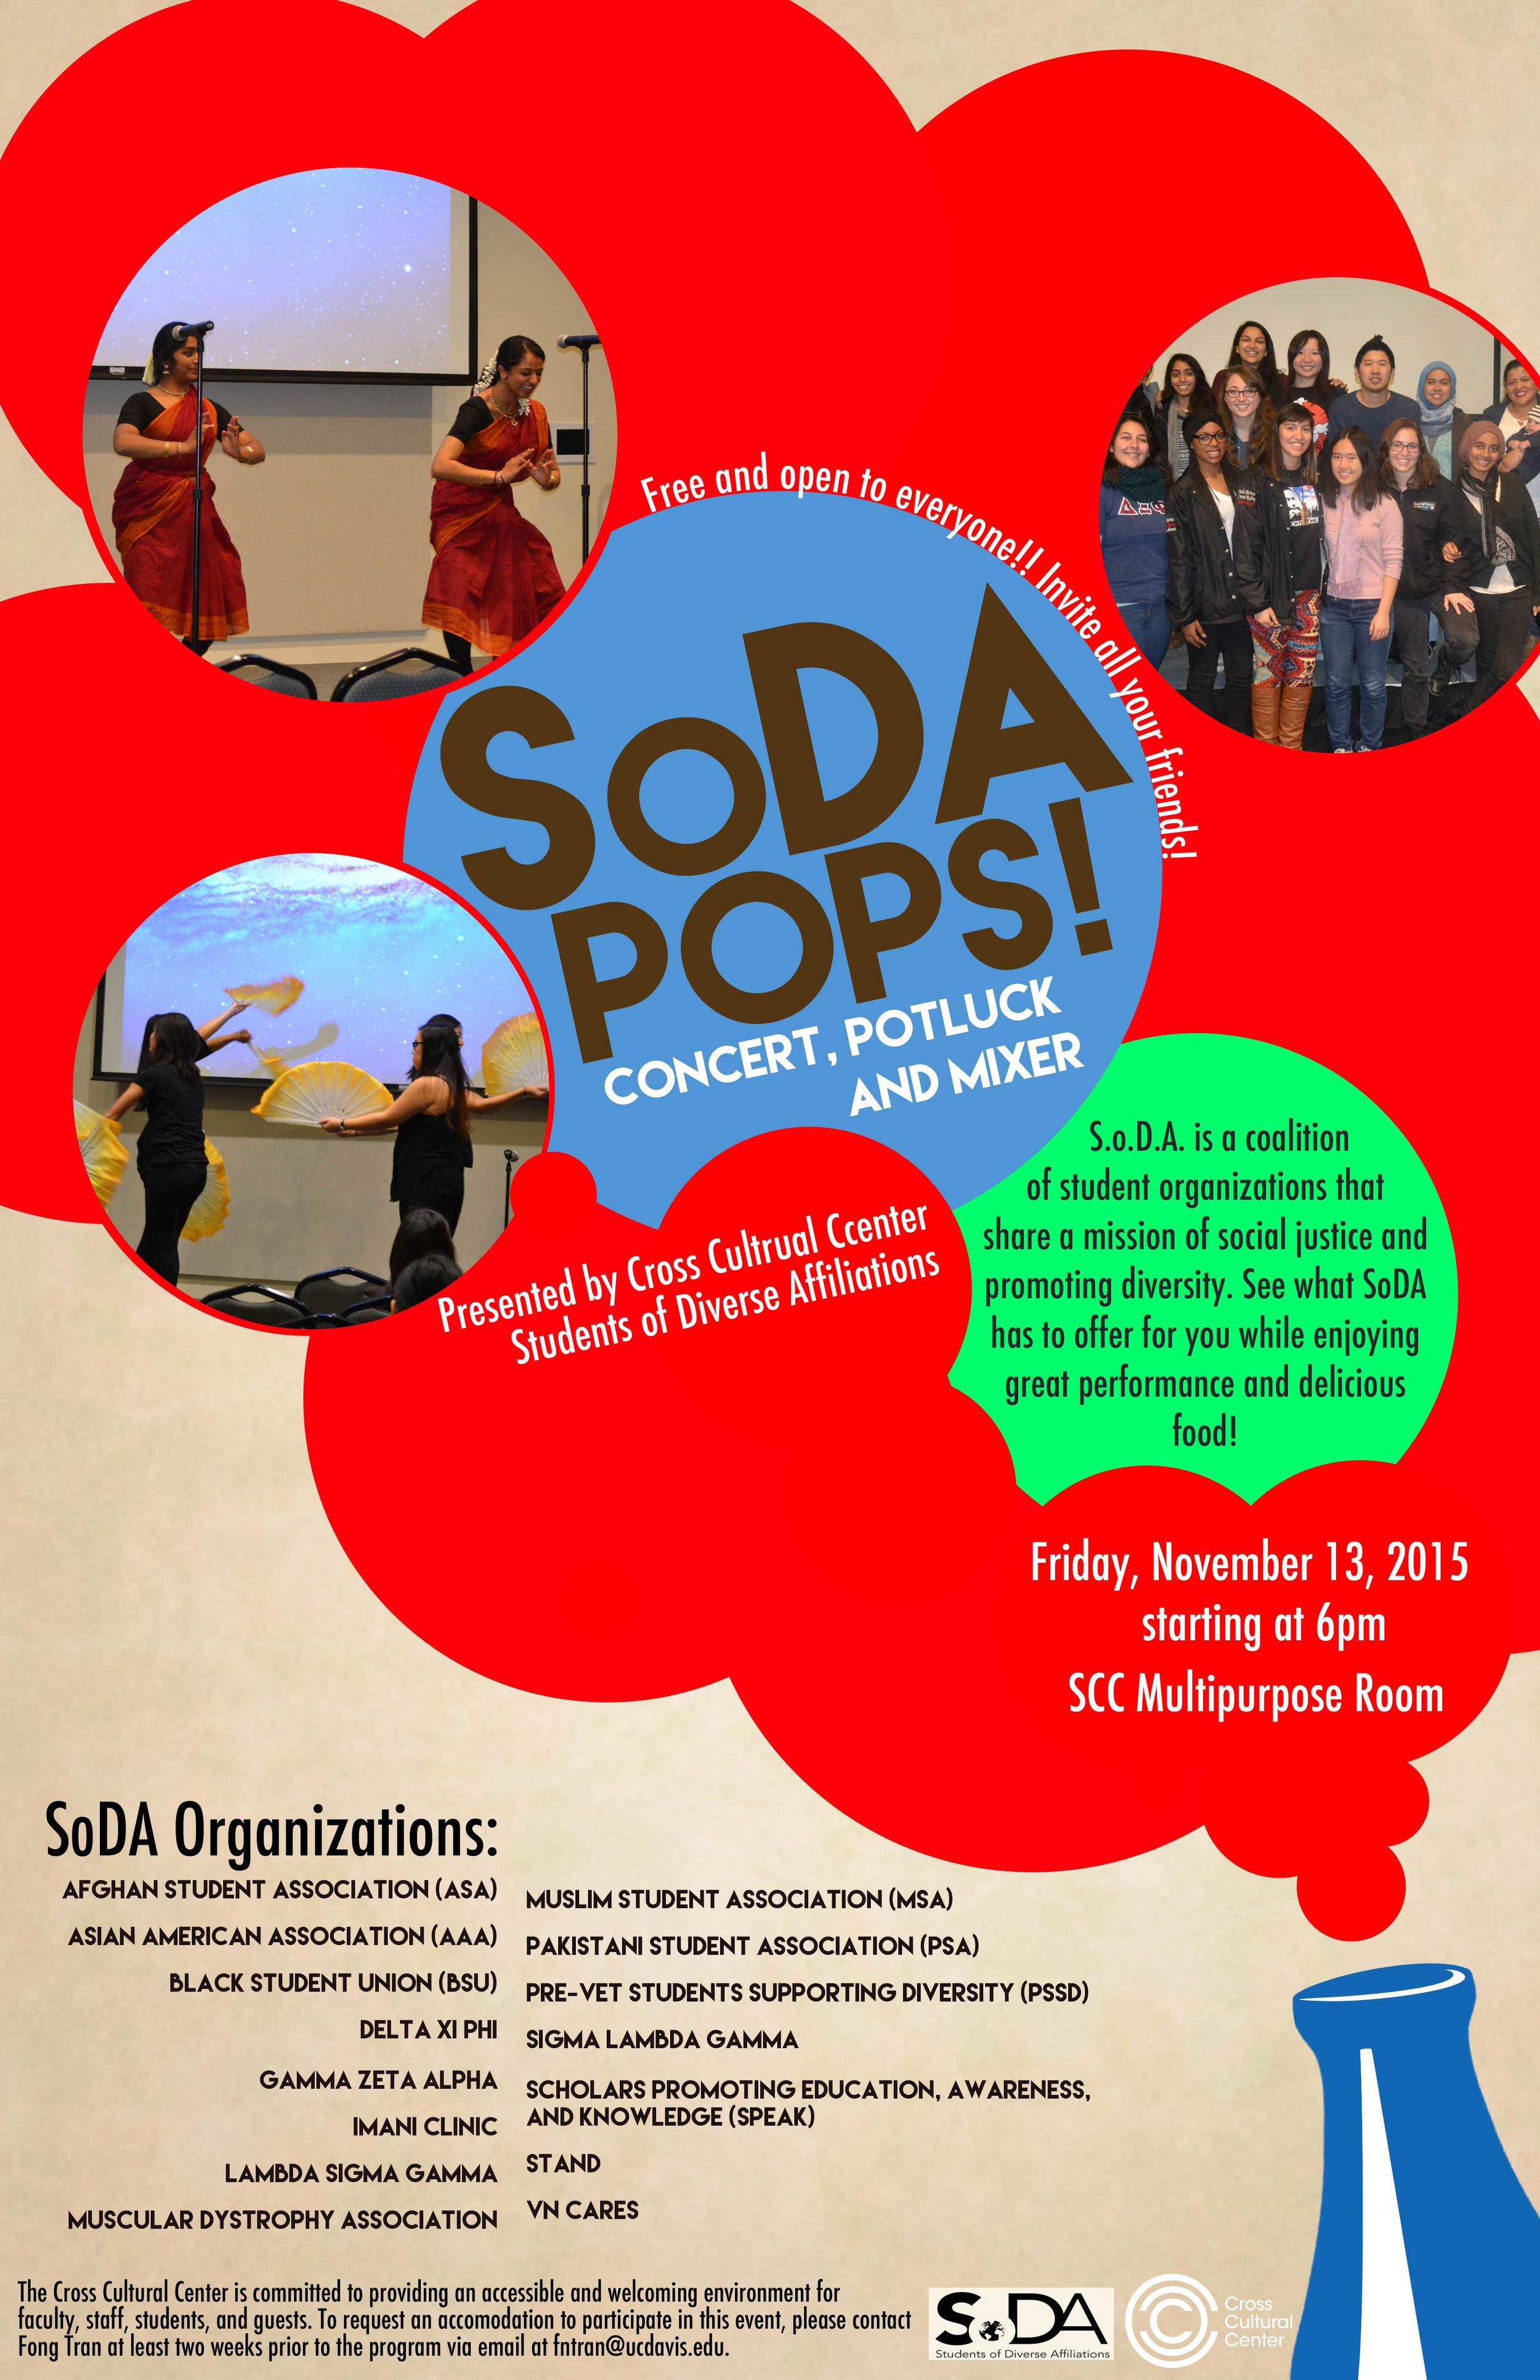 Come learn more about S.o.D.A. at UC Davis! S.o.D.A. stands for Students of Diverse Affiliations and is the umbrella organization for many student groups here at Davis! This event is free and there will be food and entertainment! Come learn more about S.o.D.A. and its goals for the upcoming year!